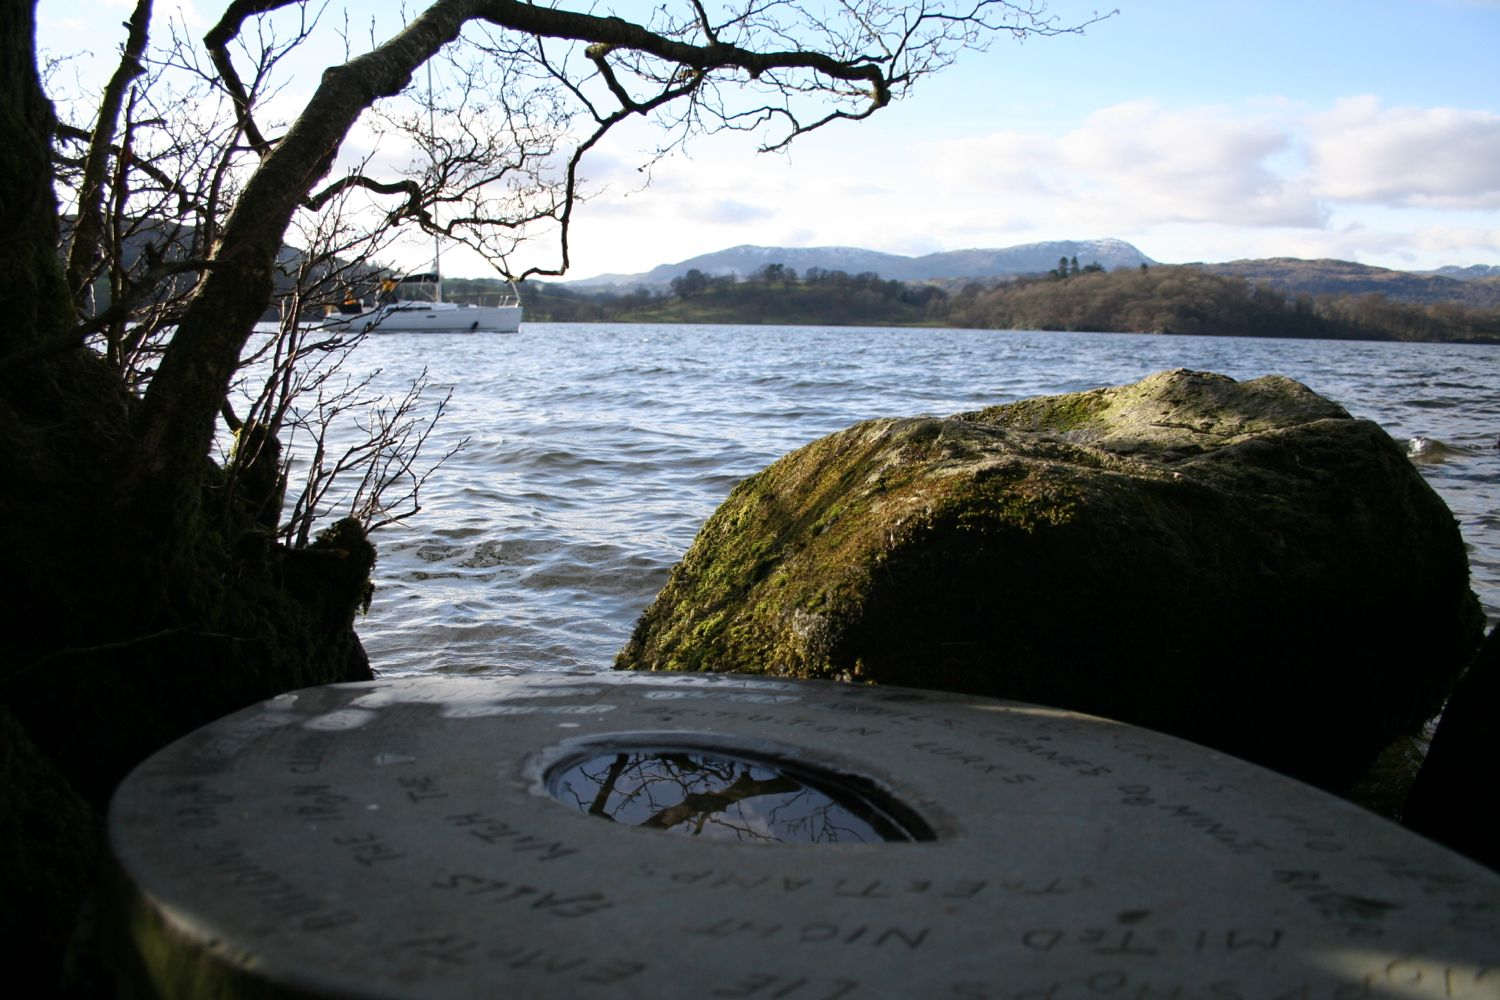 Sculpture on a rock in the Lake itself